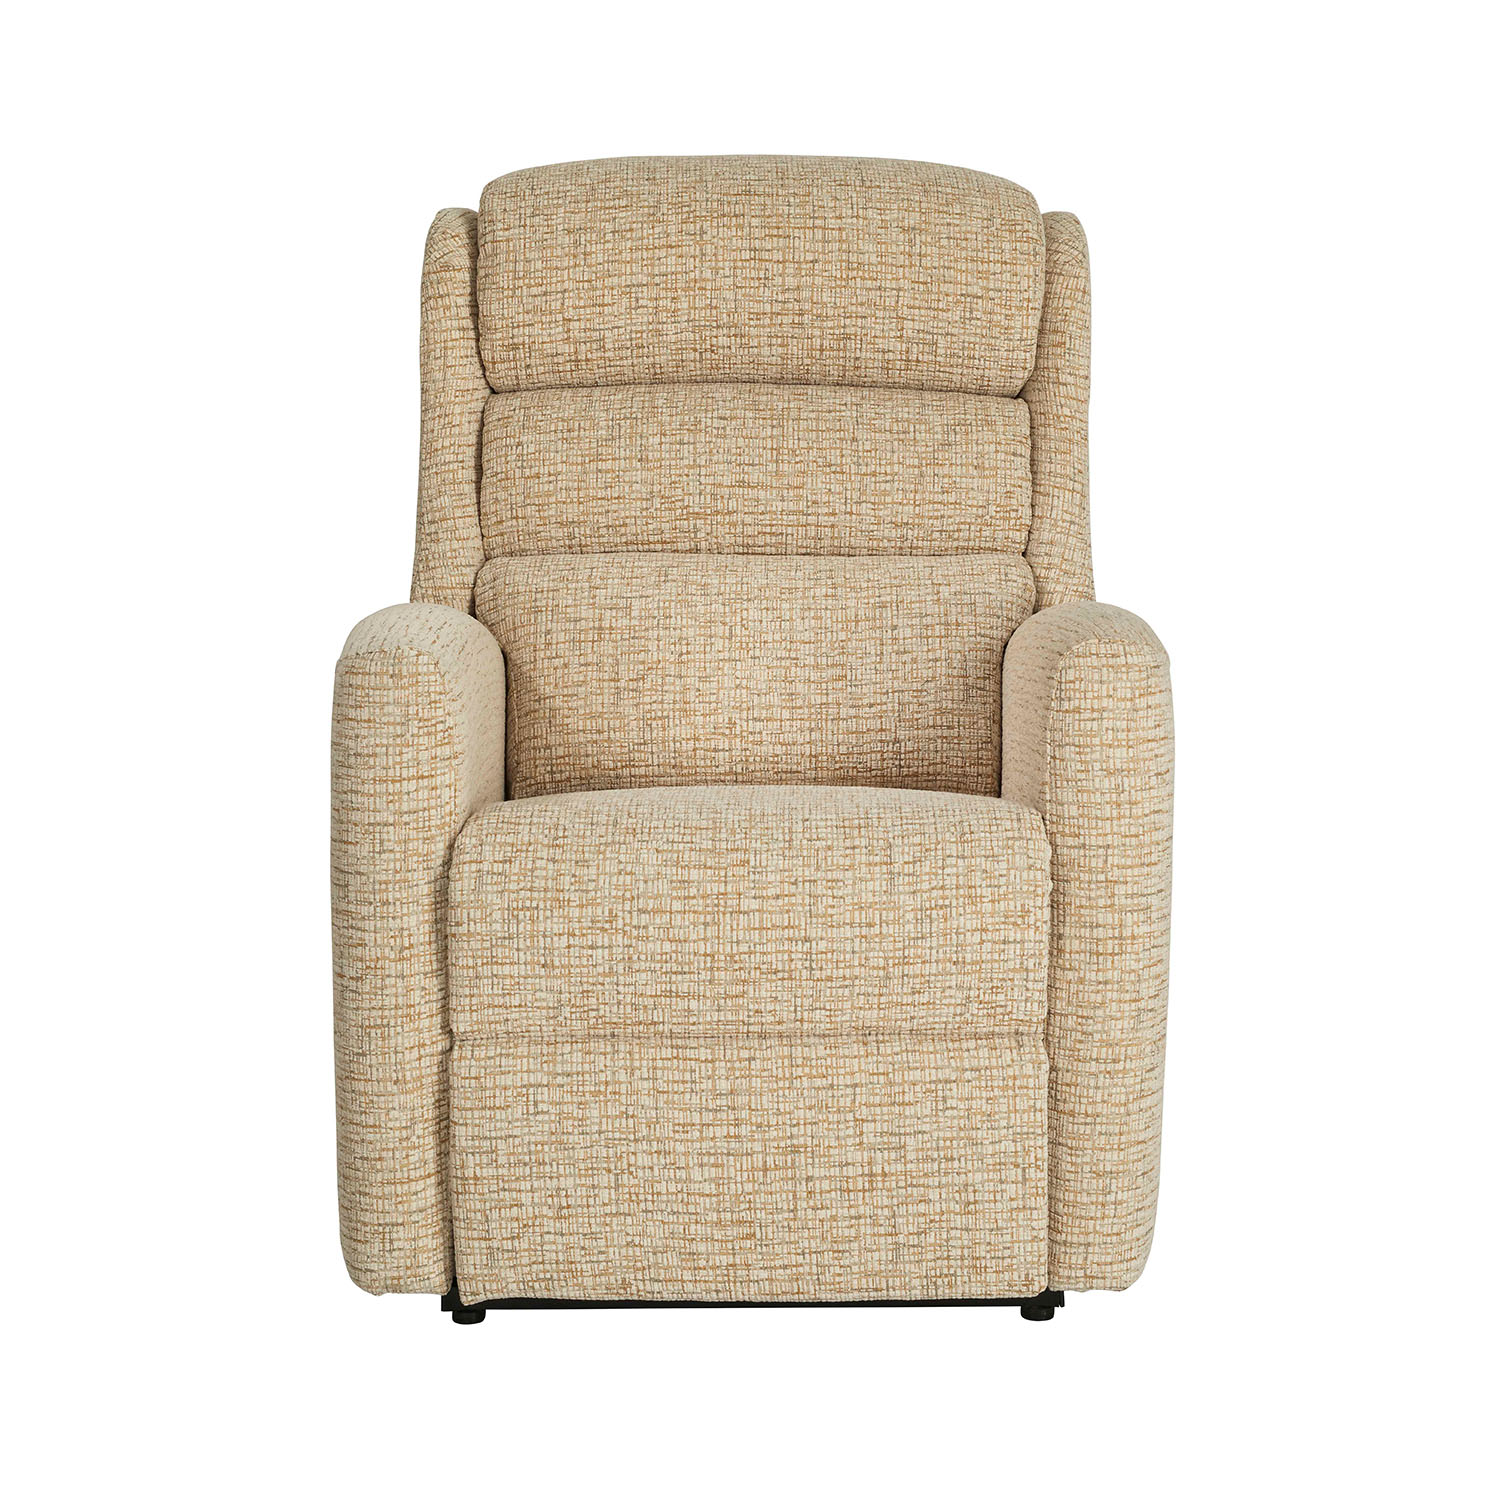 Image of Celebrity Somersby Petite Double Recliner Fabric Chair